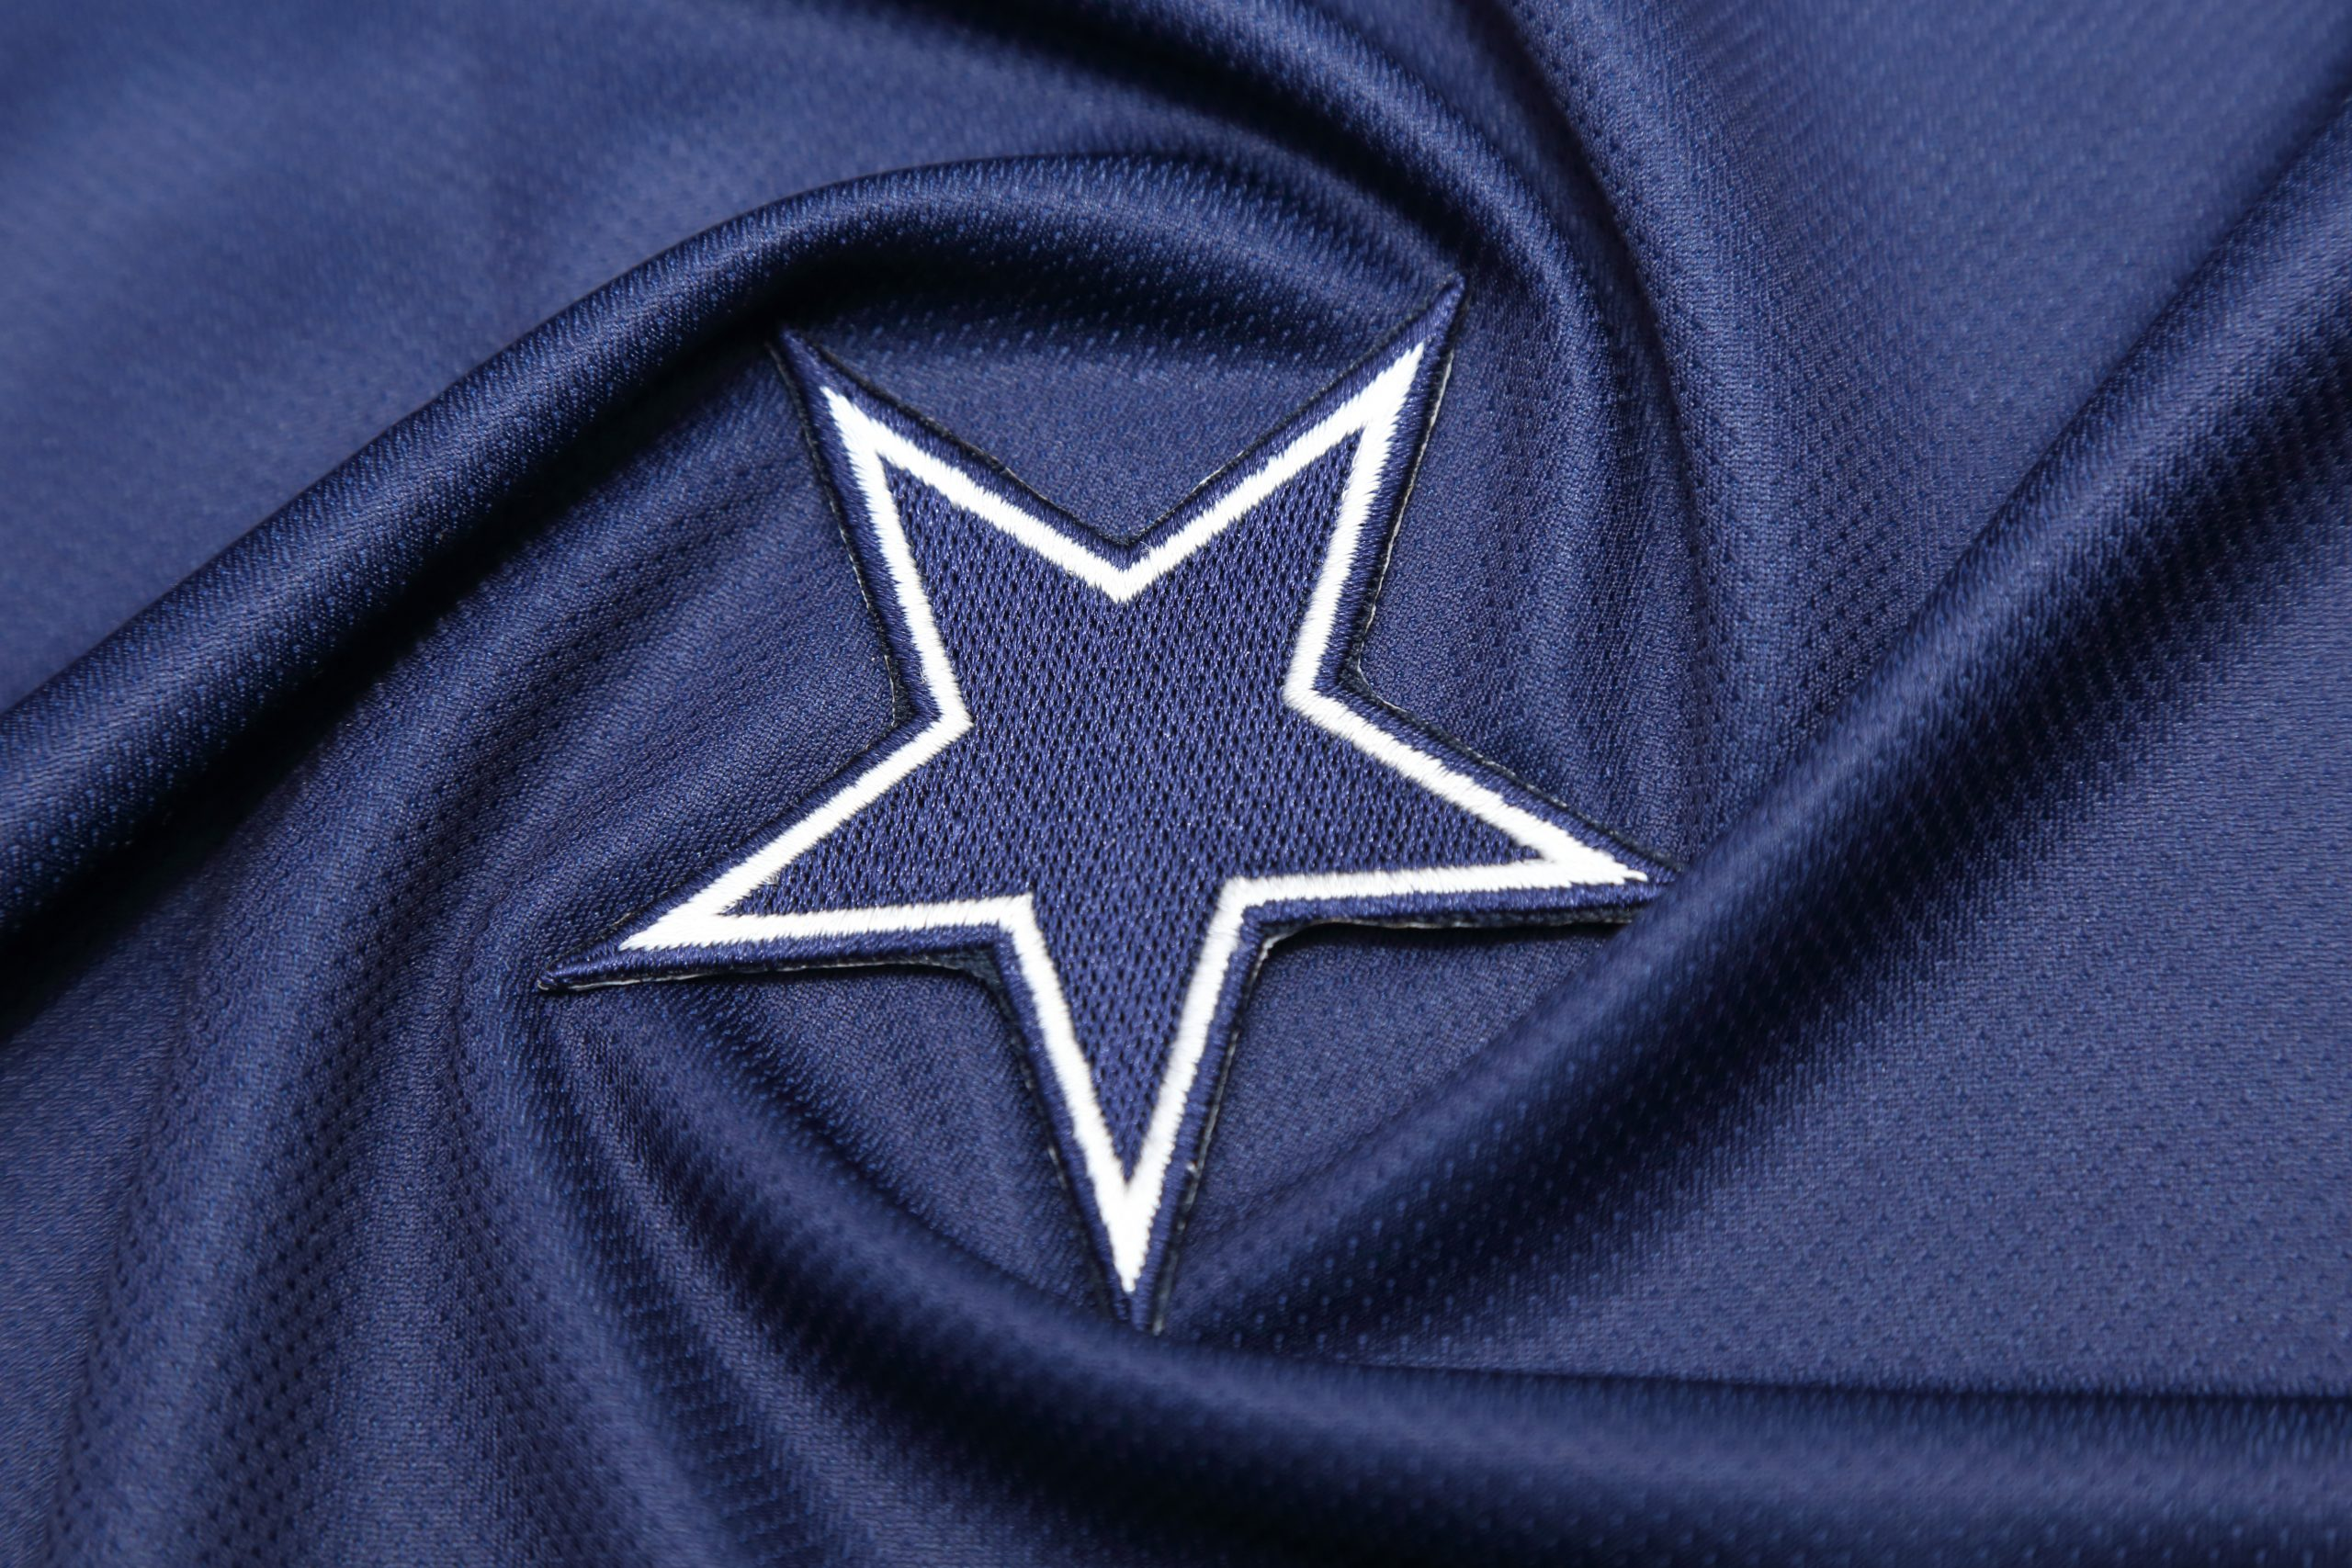 This is a picture of the Dallas Cowboys badge for an article called Competitive Intelligence Thoughts of Lone Star's Director of Competitive Intelligence, Laurie Young by Octopus is a Competitive Intelligence Competitor Analysis focused on creating certainty